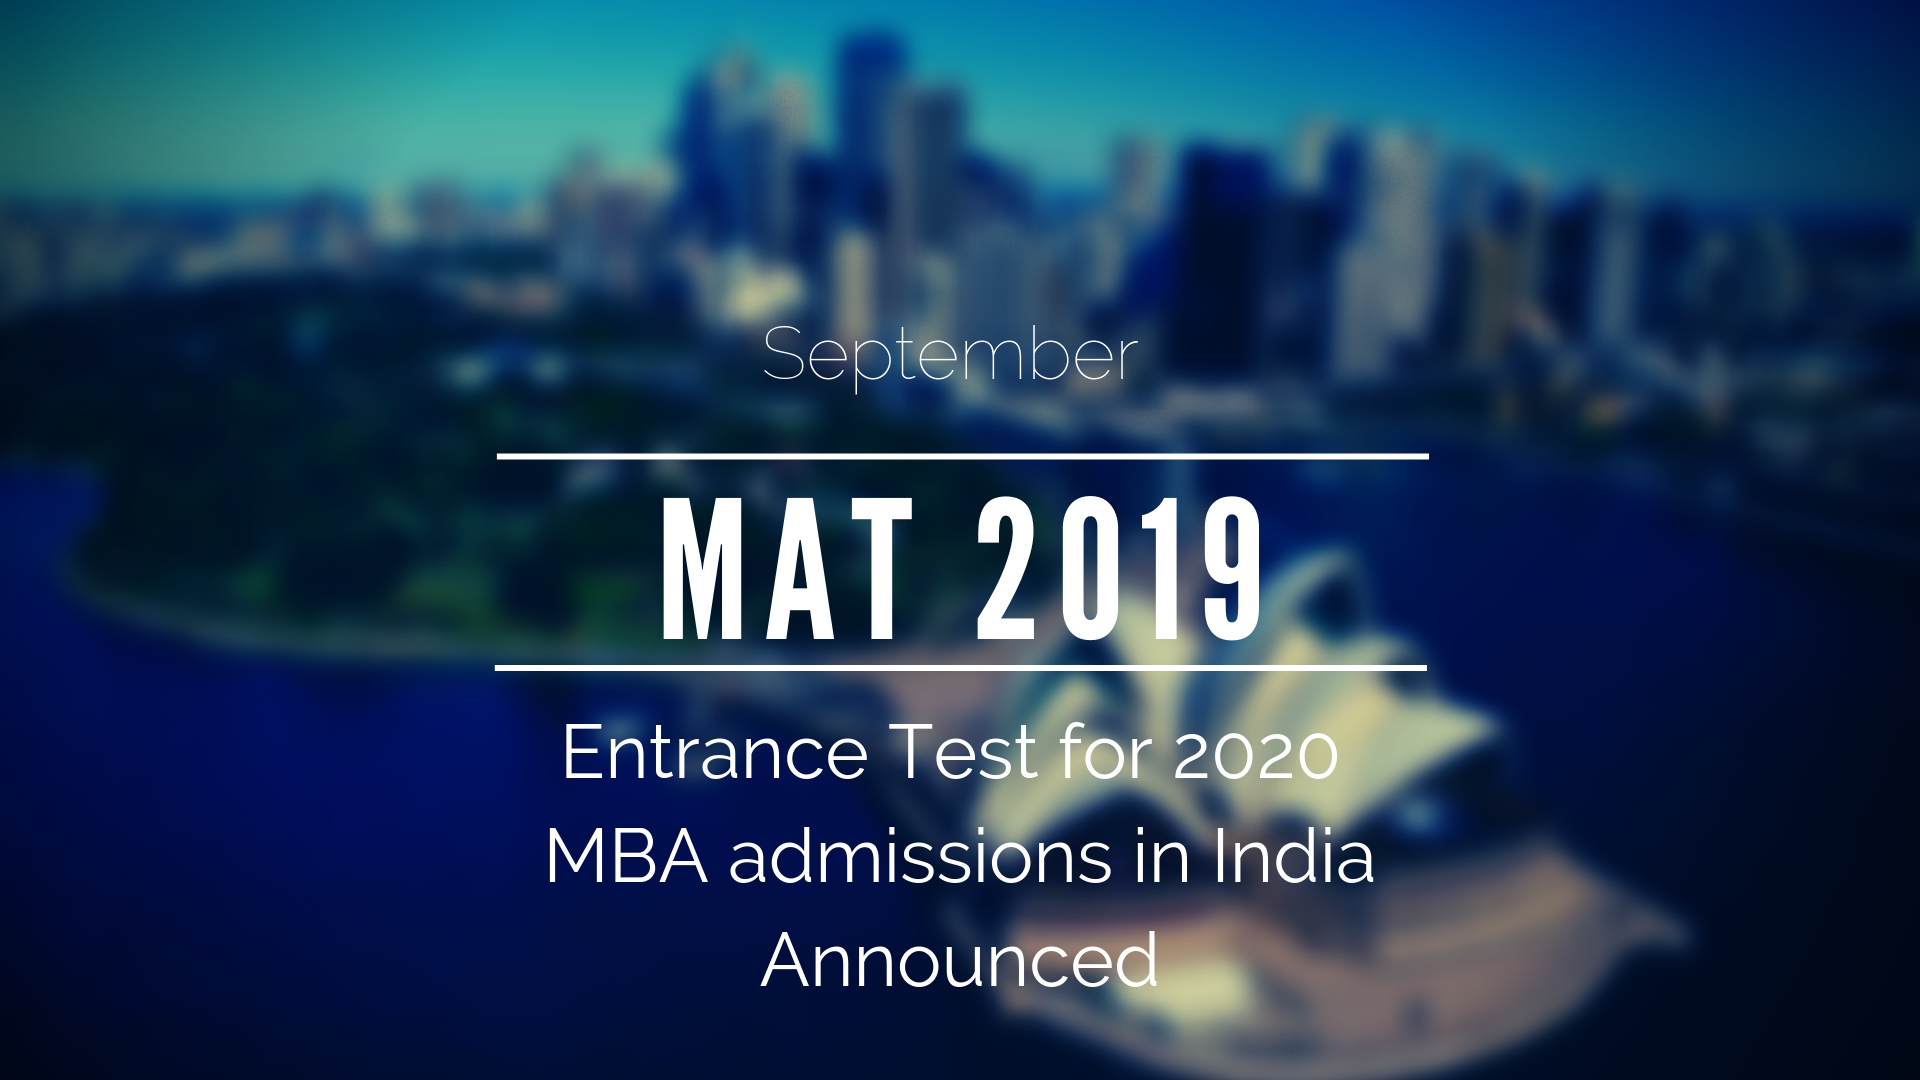 MAT 2019 (September) Registration starts and Dates Announced